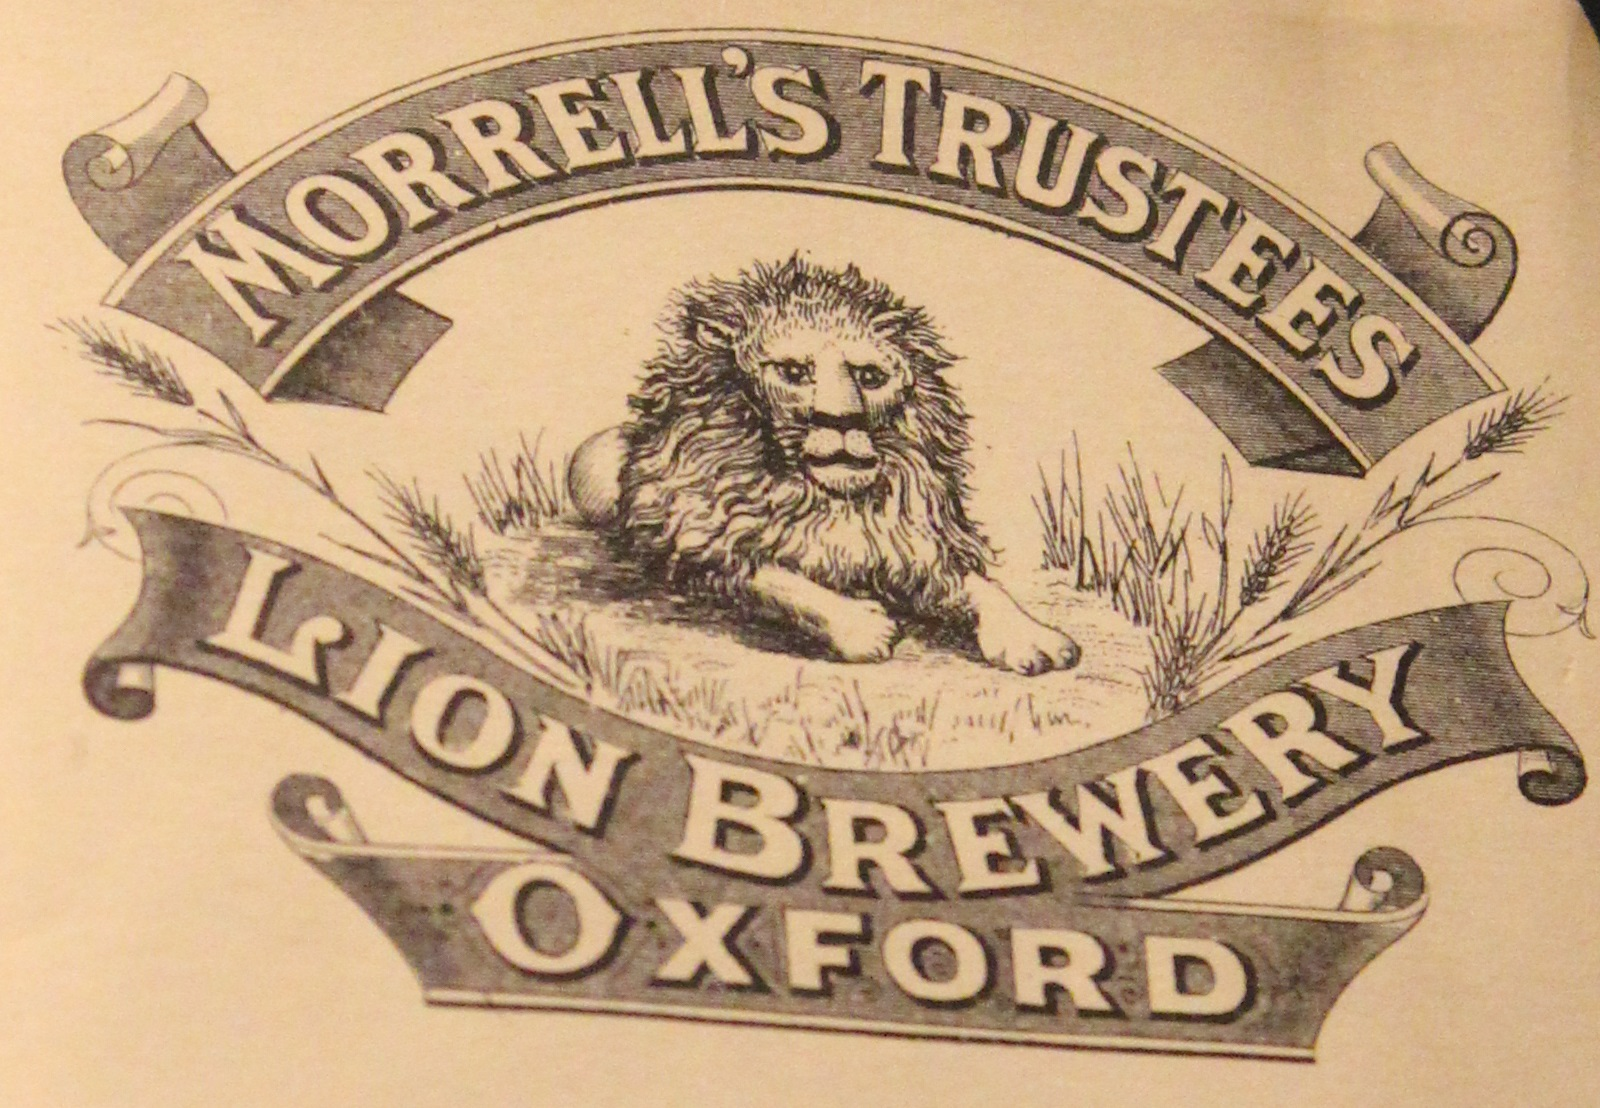 The Morrells trustees Lion Brewery logo featuring a lion